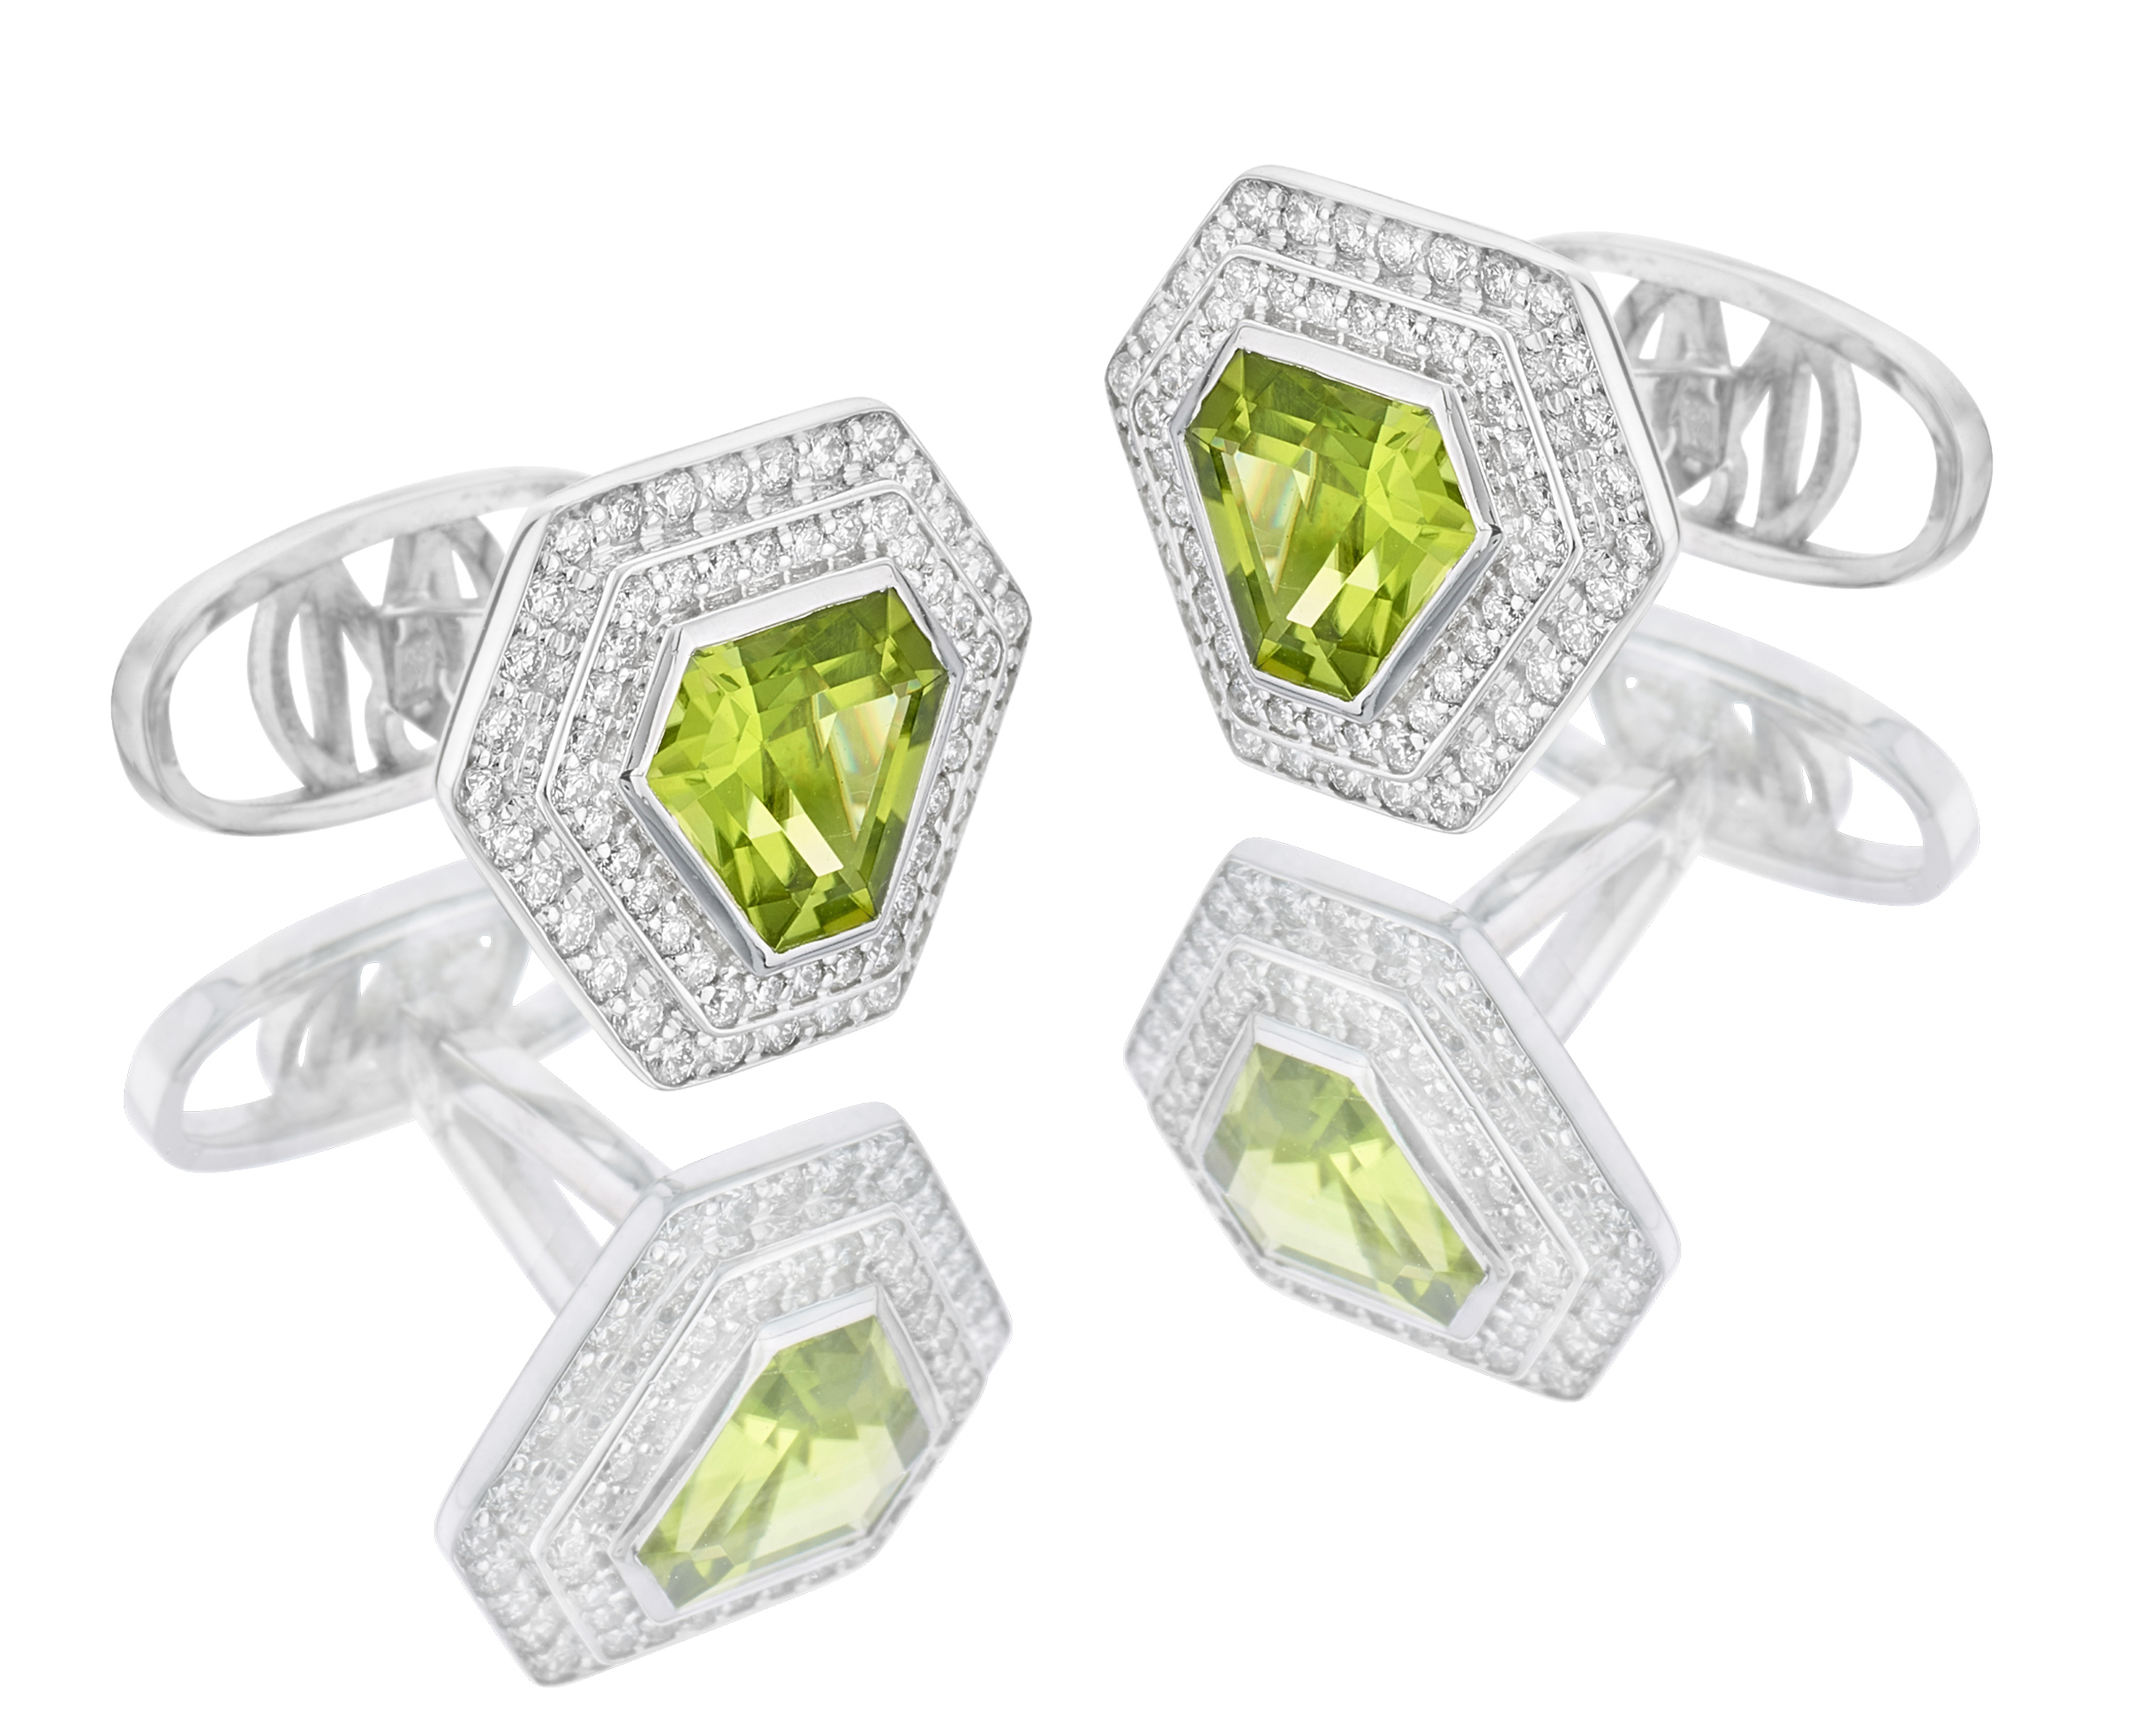 Oh My Got cufflinks | JCK On Your Market